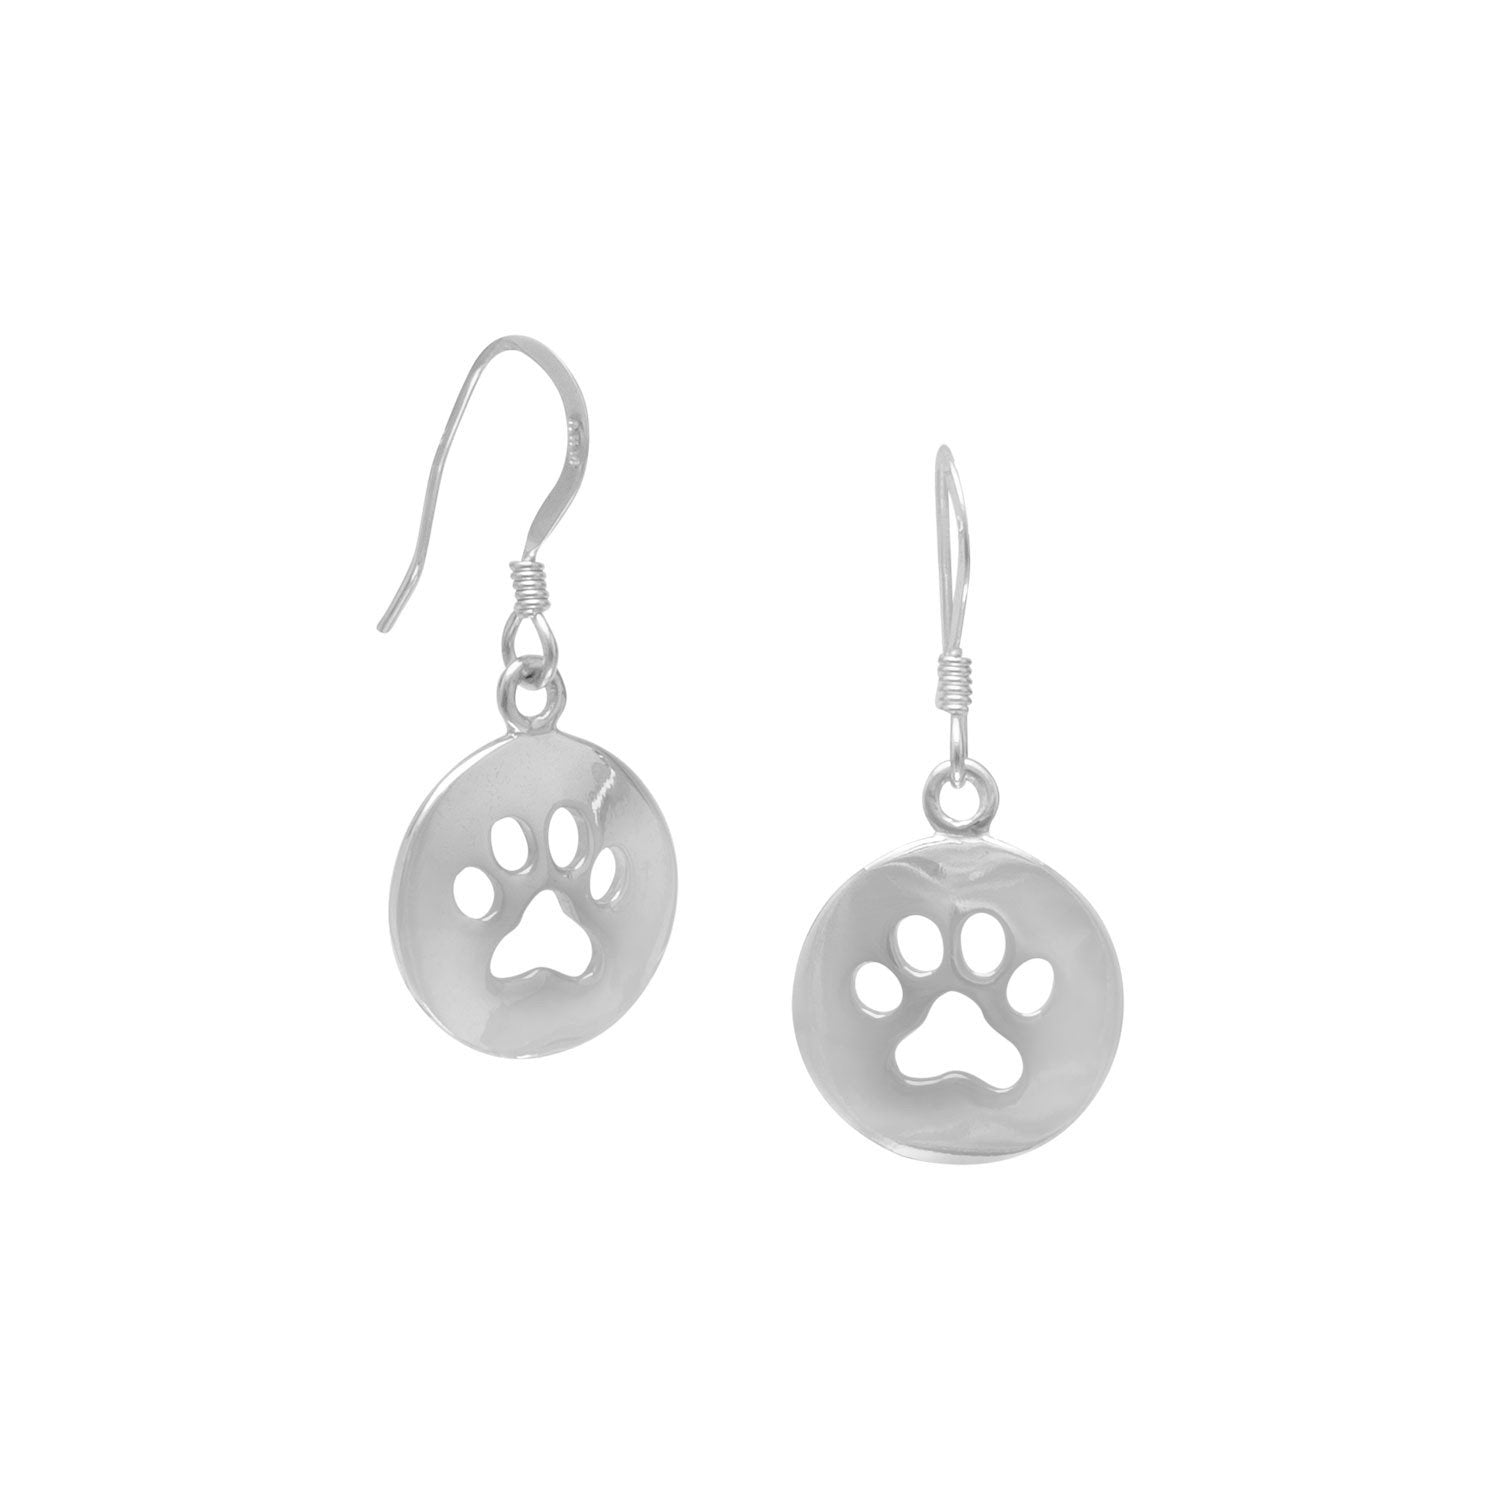 Cut Out Paw Print Earrings - the-southern-magnolia-too